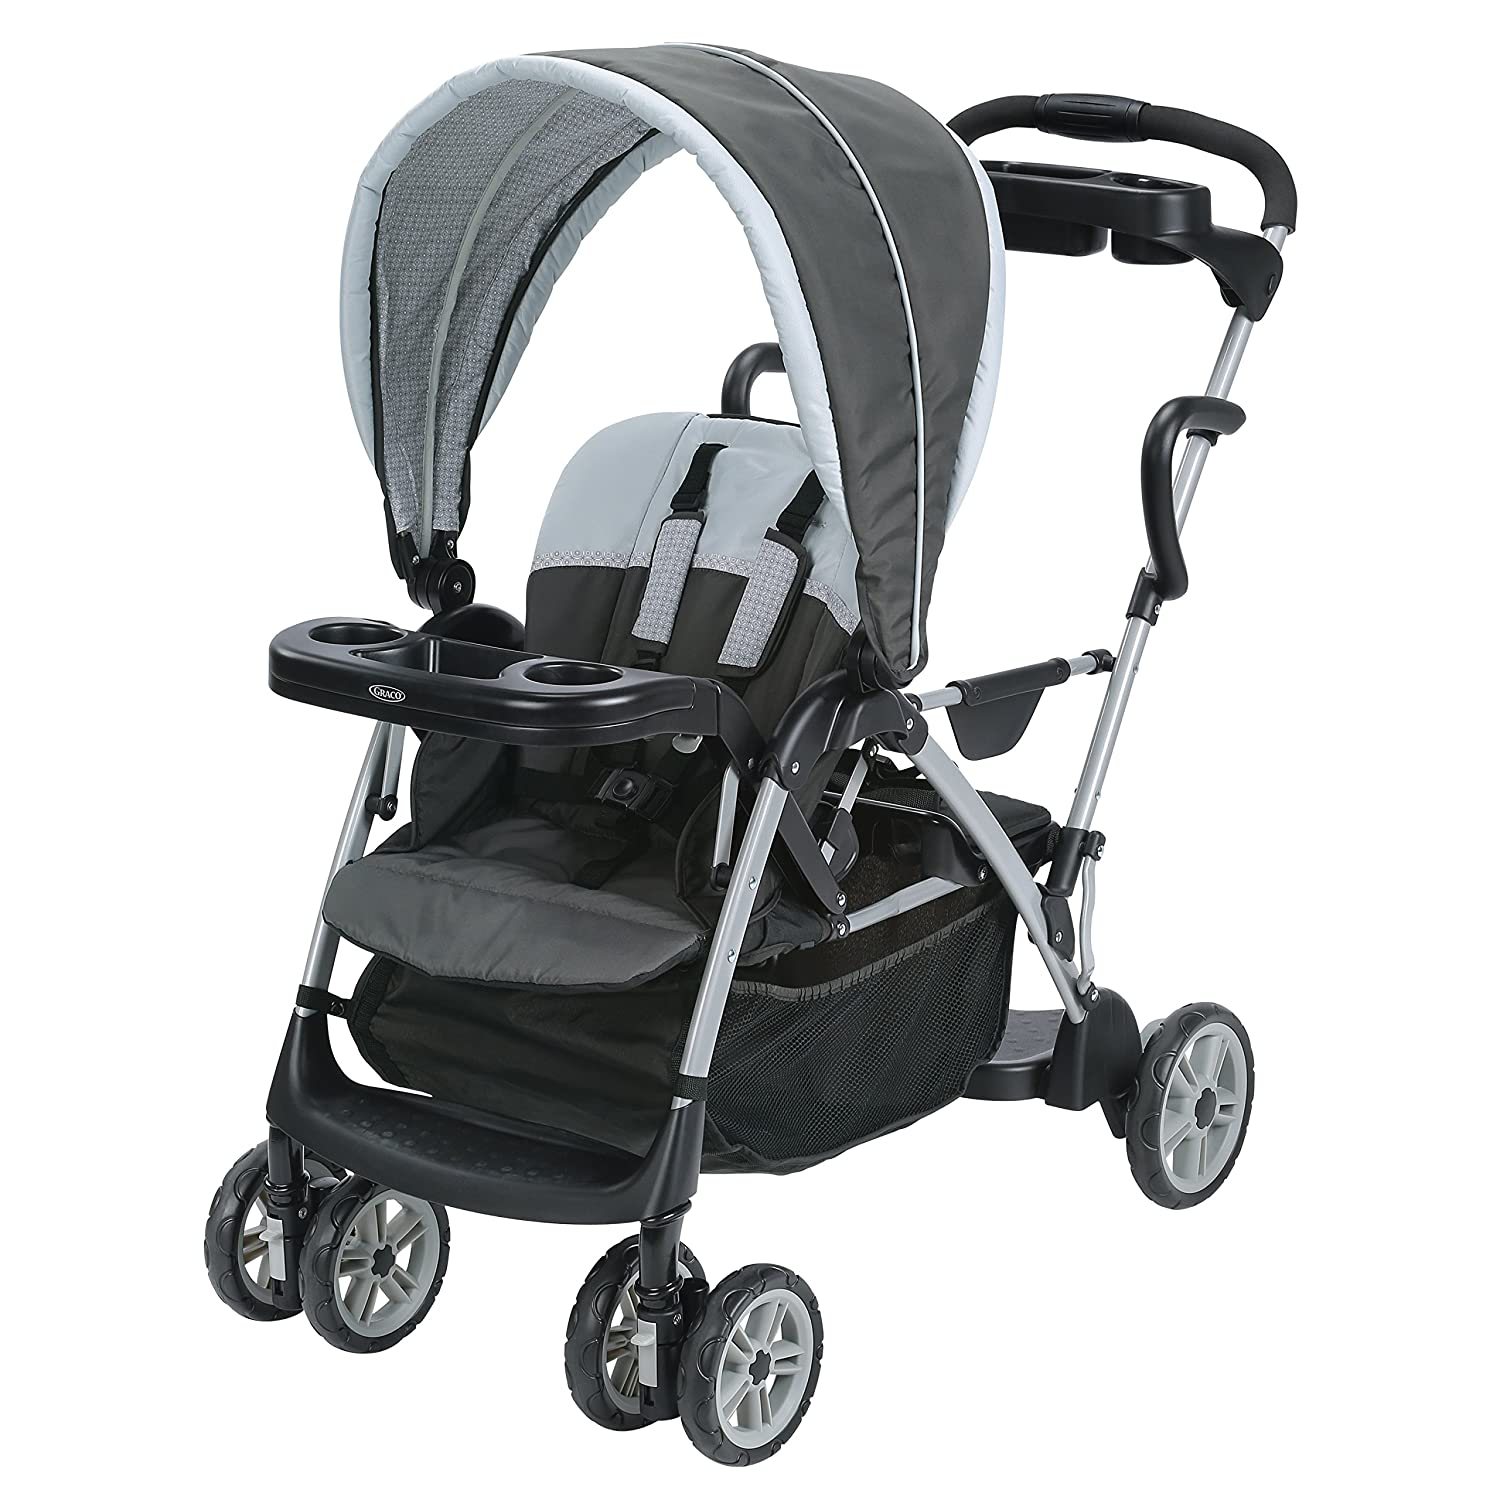 Graco Roomfor2 Double Stroller